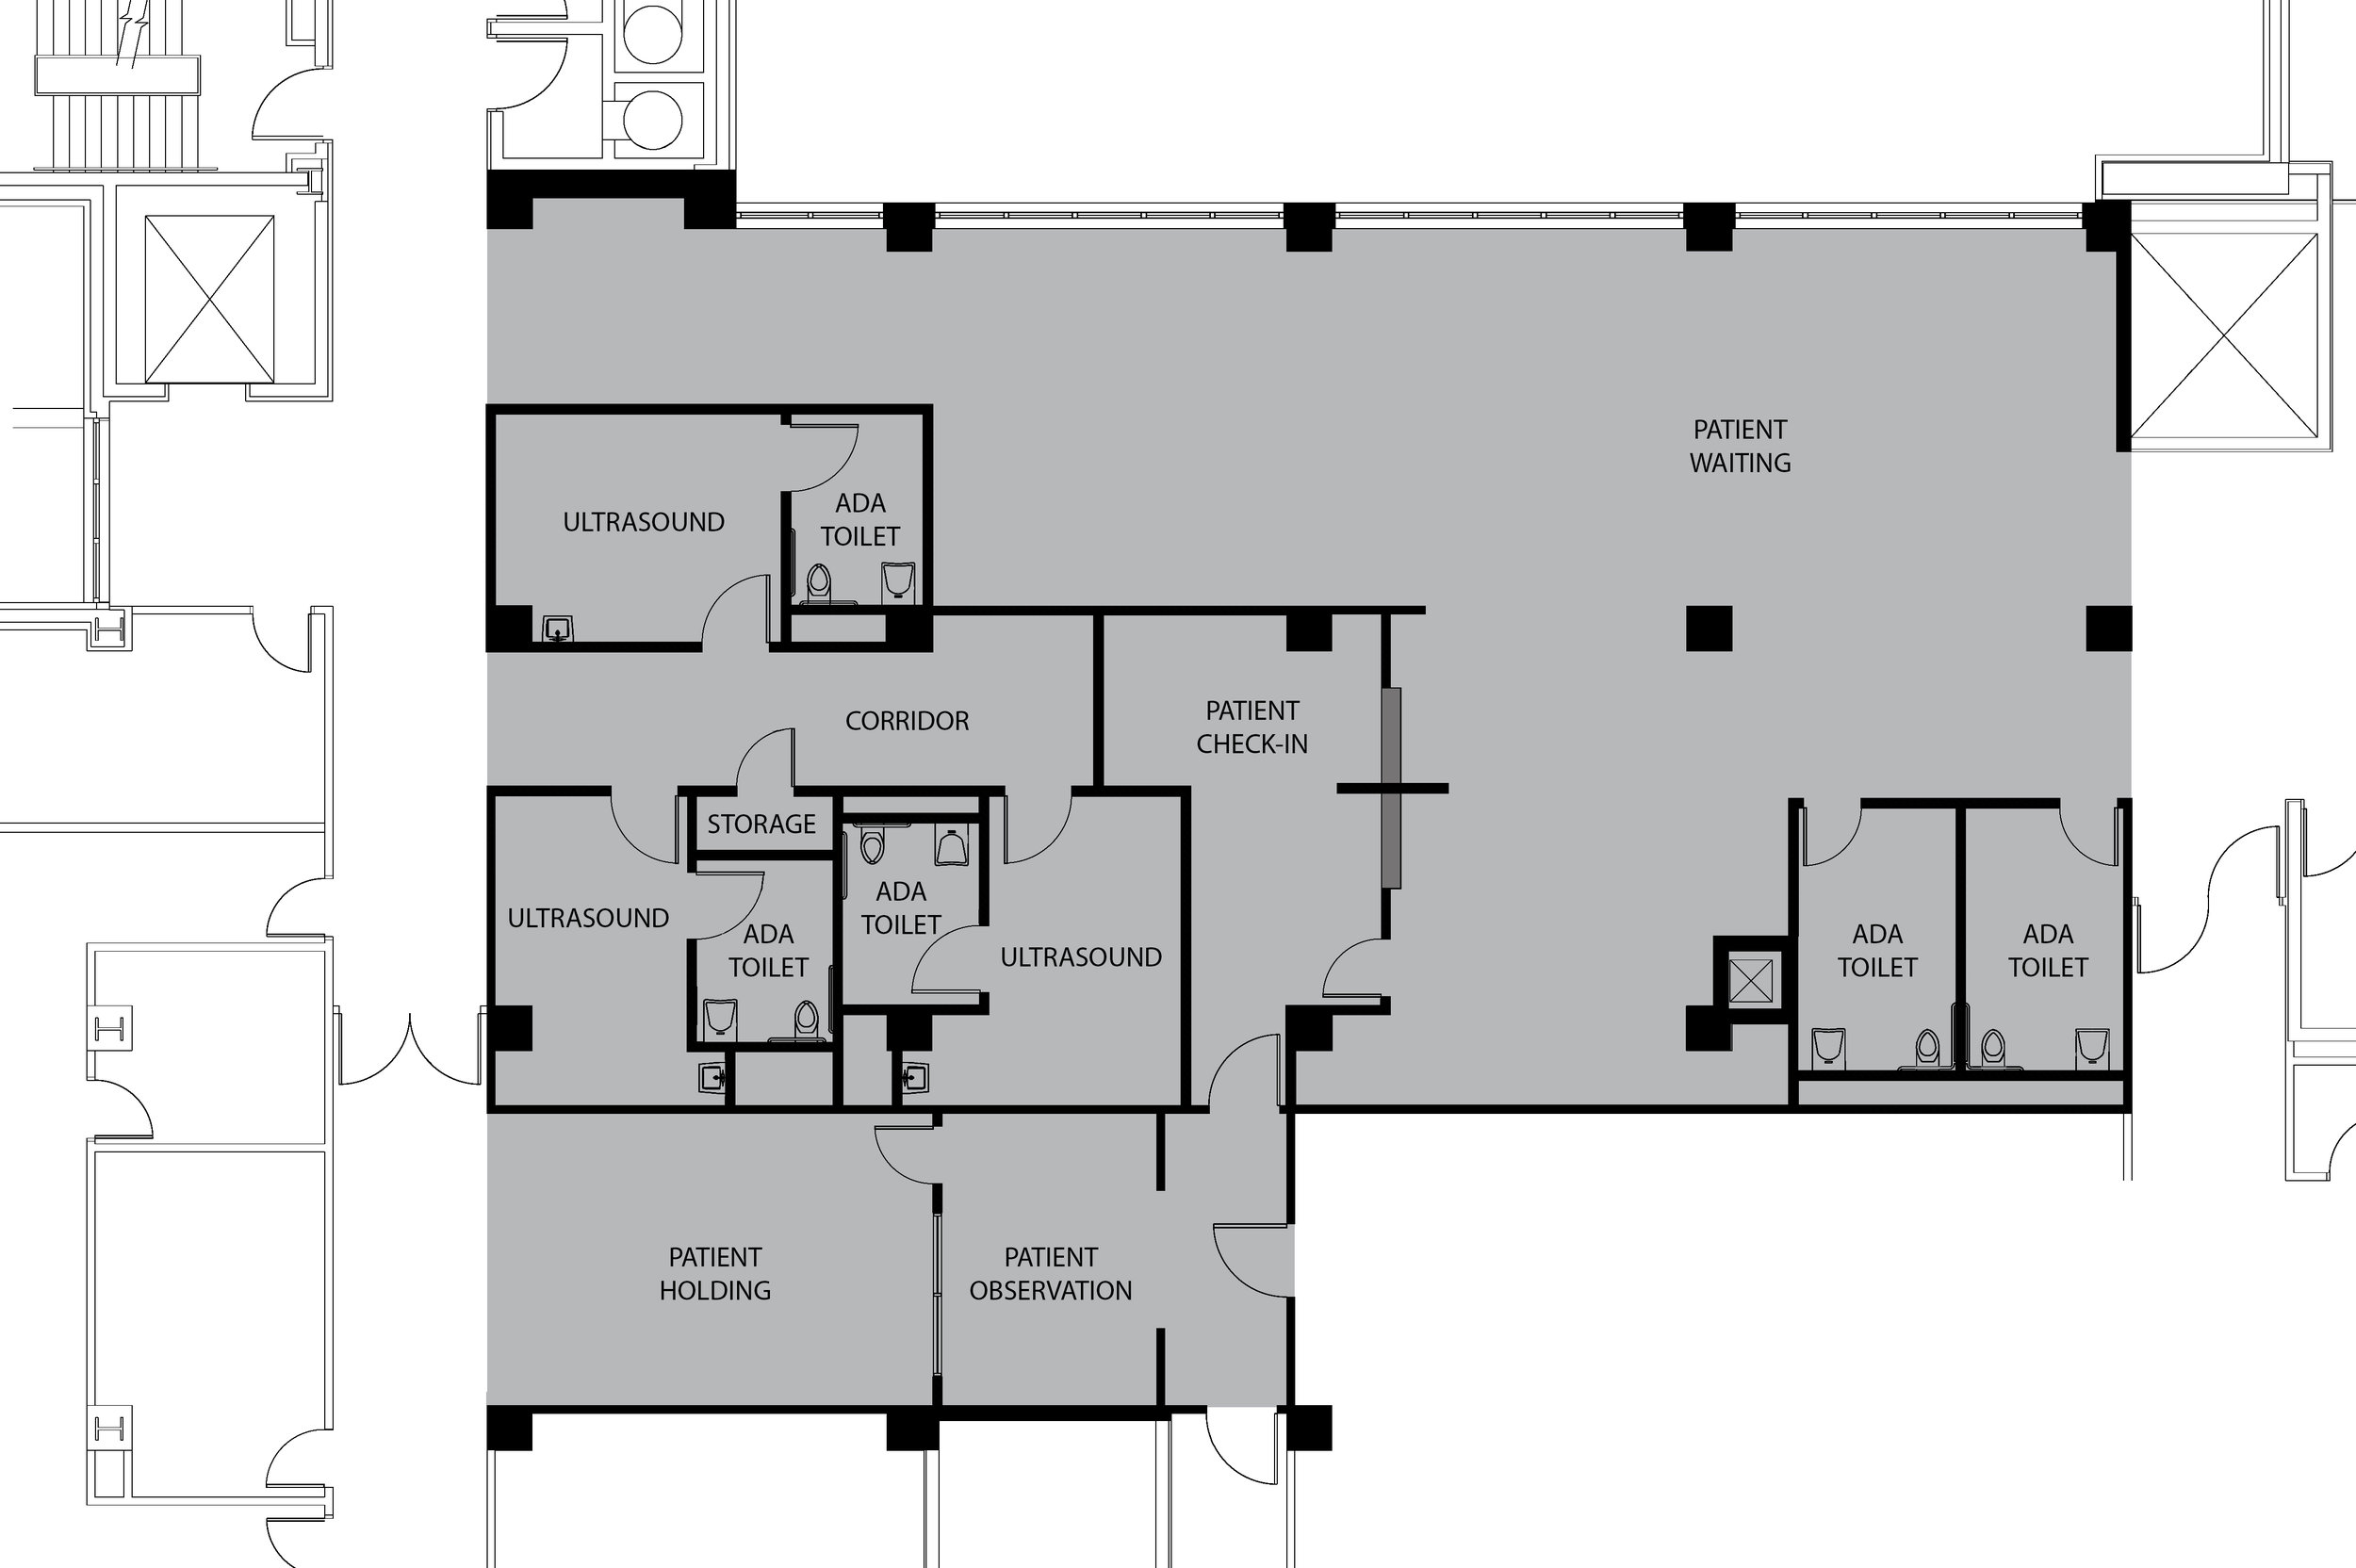 02 OKVAMC FLOOR PLAN.jpg